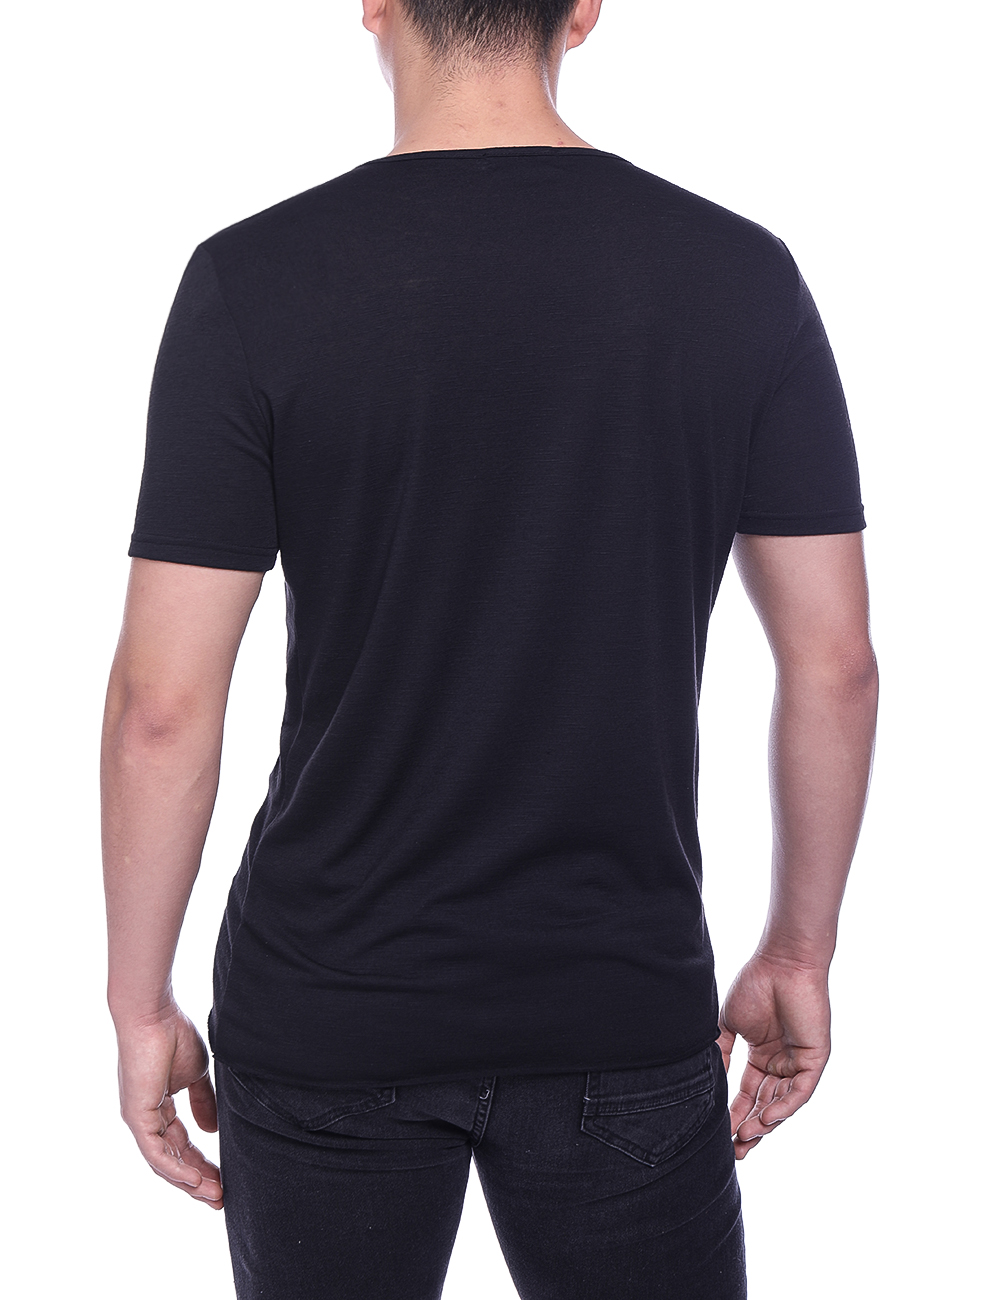 f8afbeb4176 Stylish Modern Original Popular Men T Shirt Style Vogue Faddish Supplies  Accessories Selling Latest-in T-Shirts from Men s Clothing on  Aliexpress.com ...